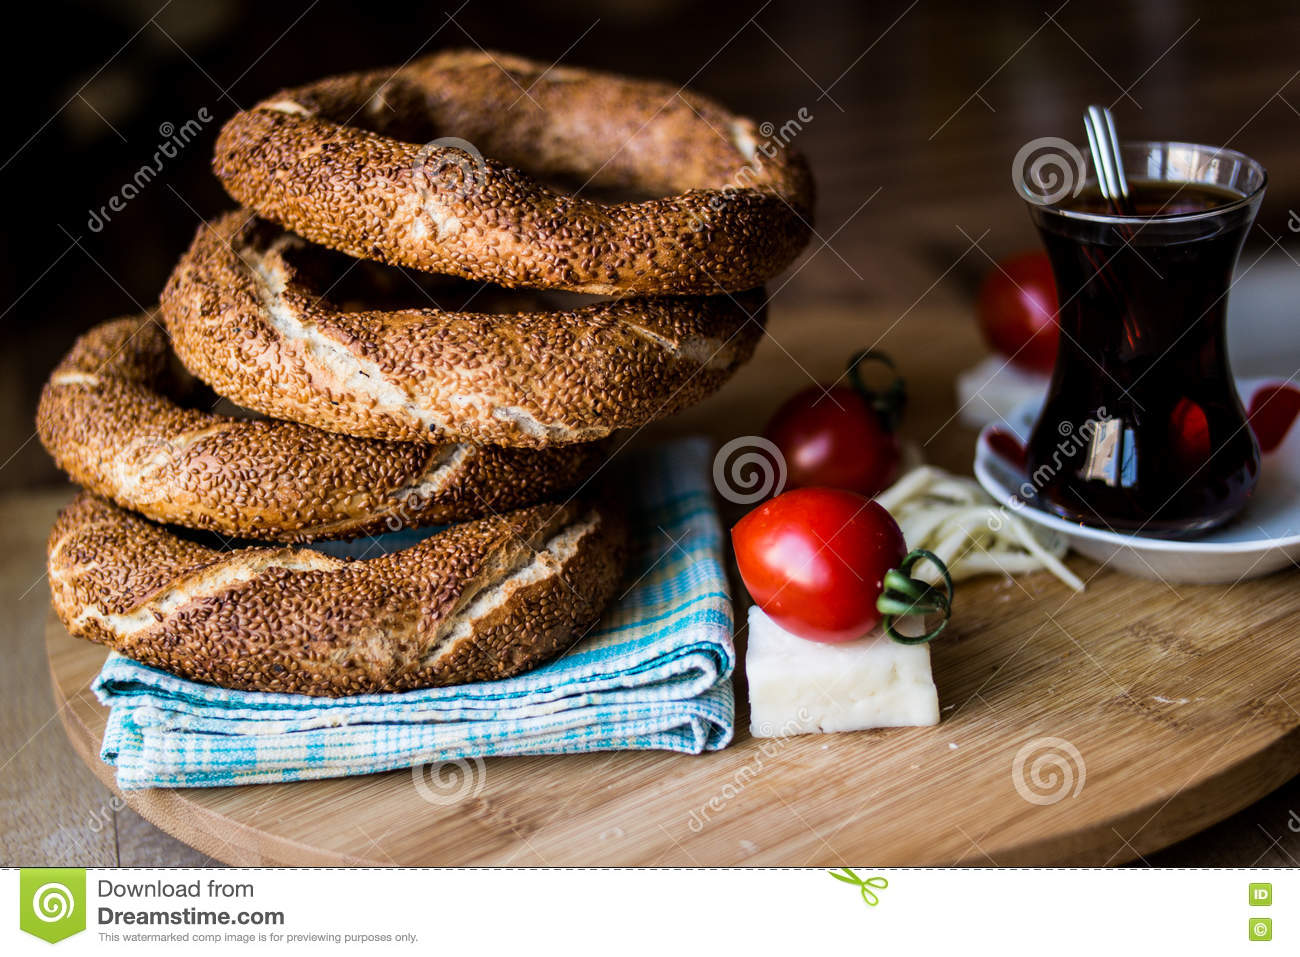 Simit com chá/Bagel turco